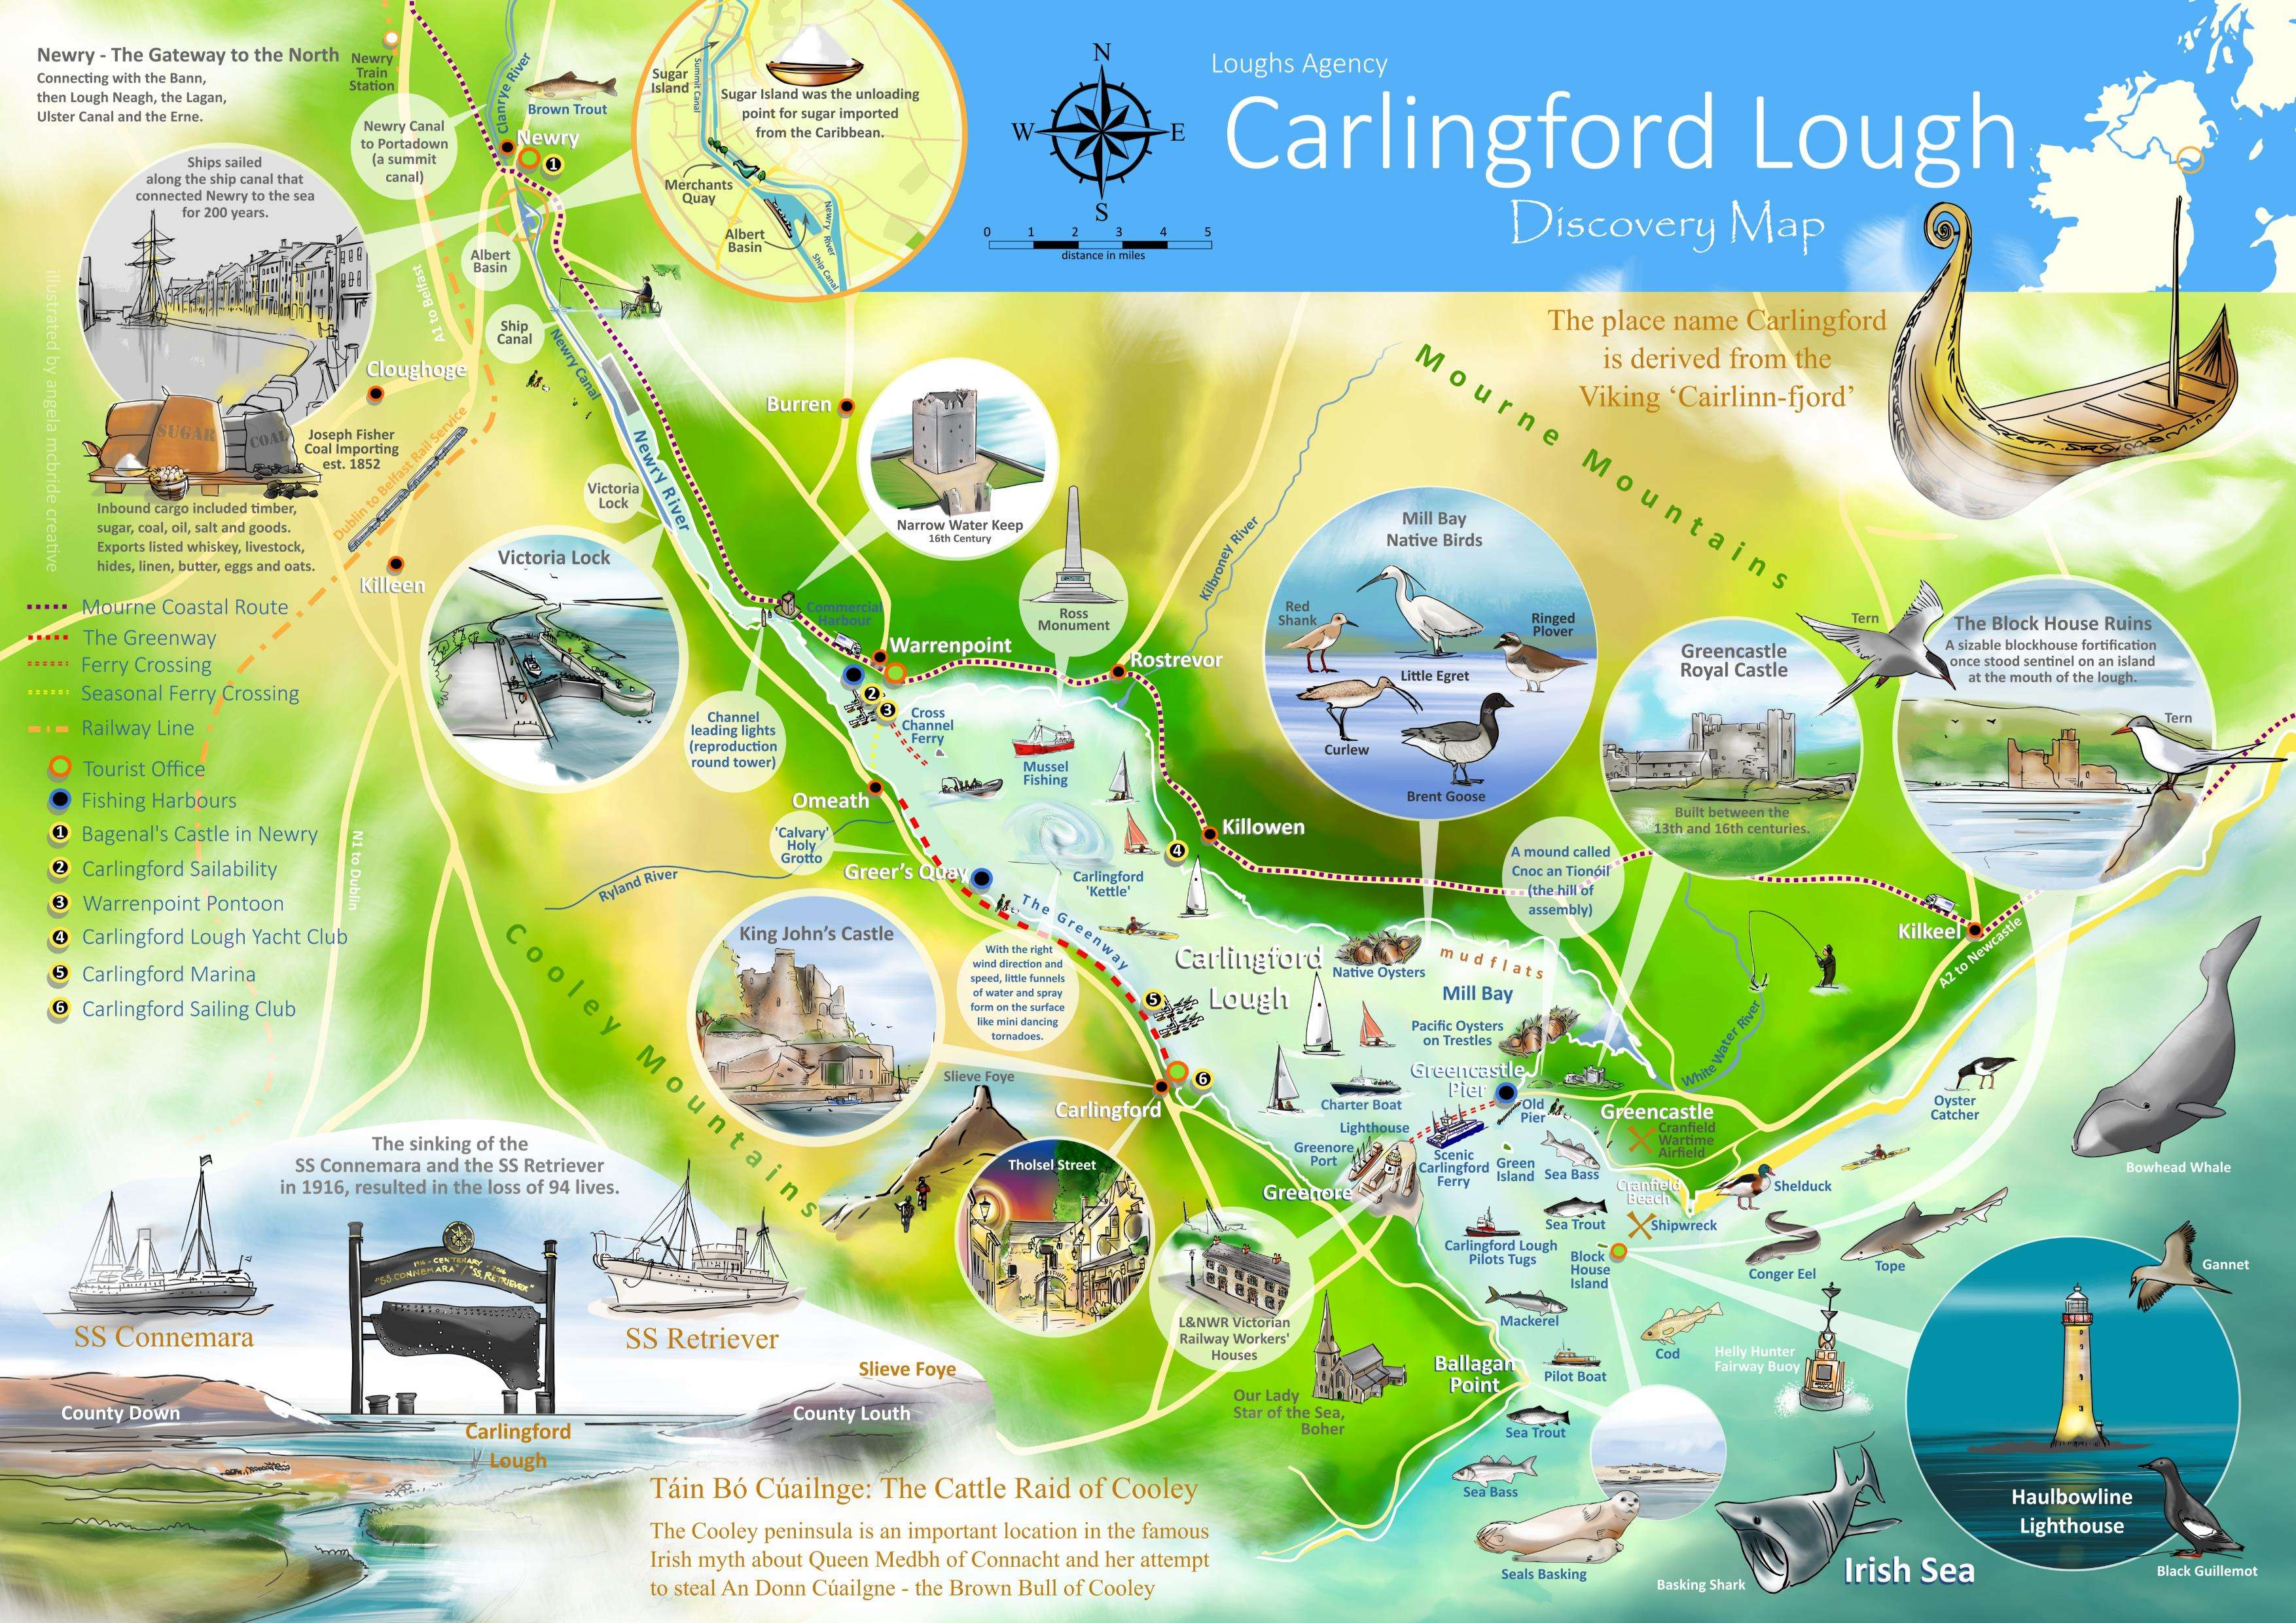 Marine Tourism map of Carlingford area